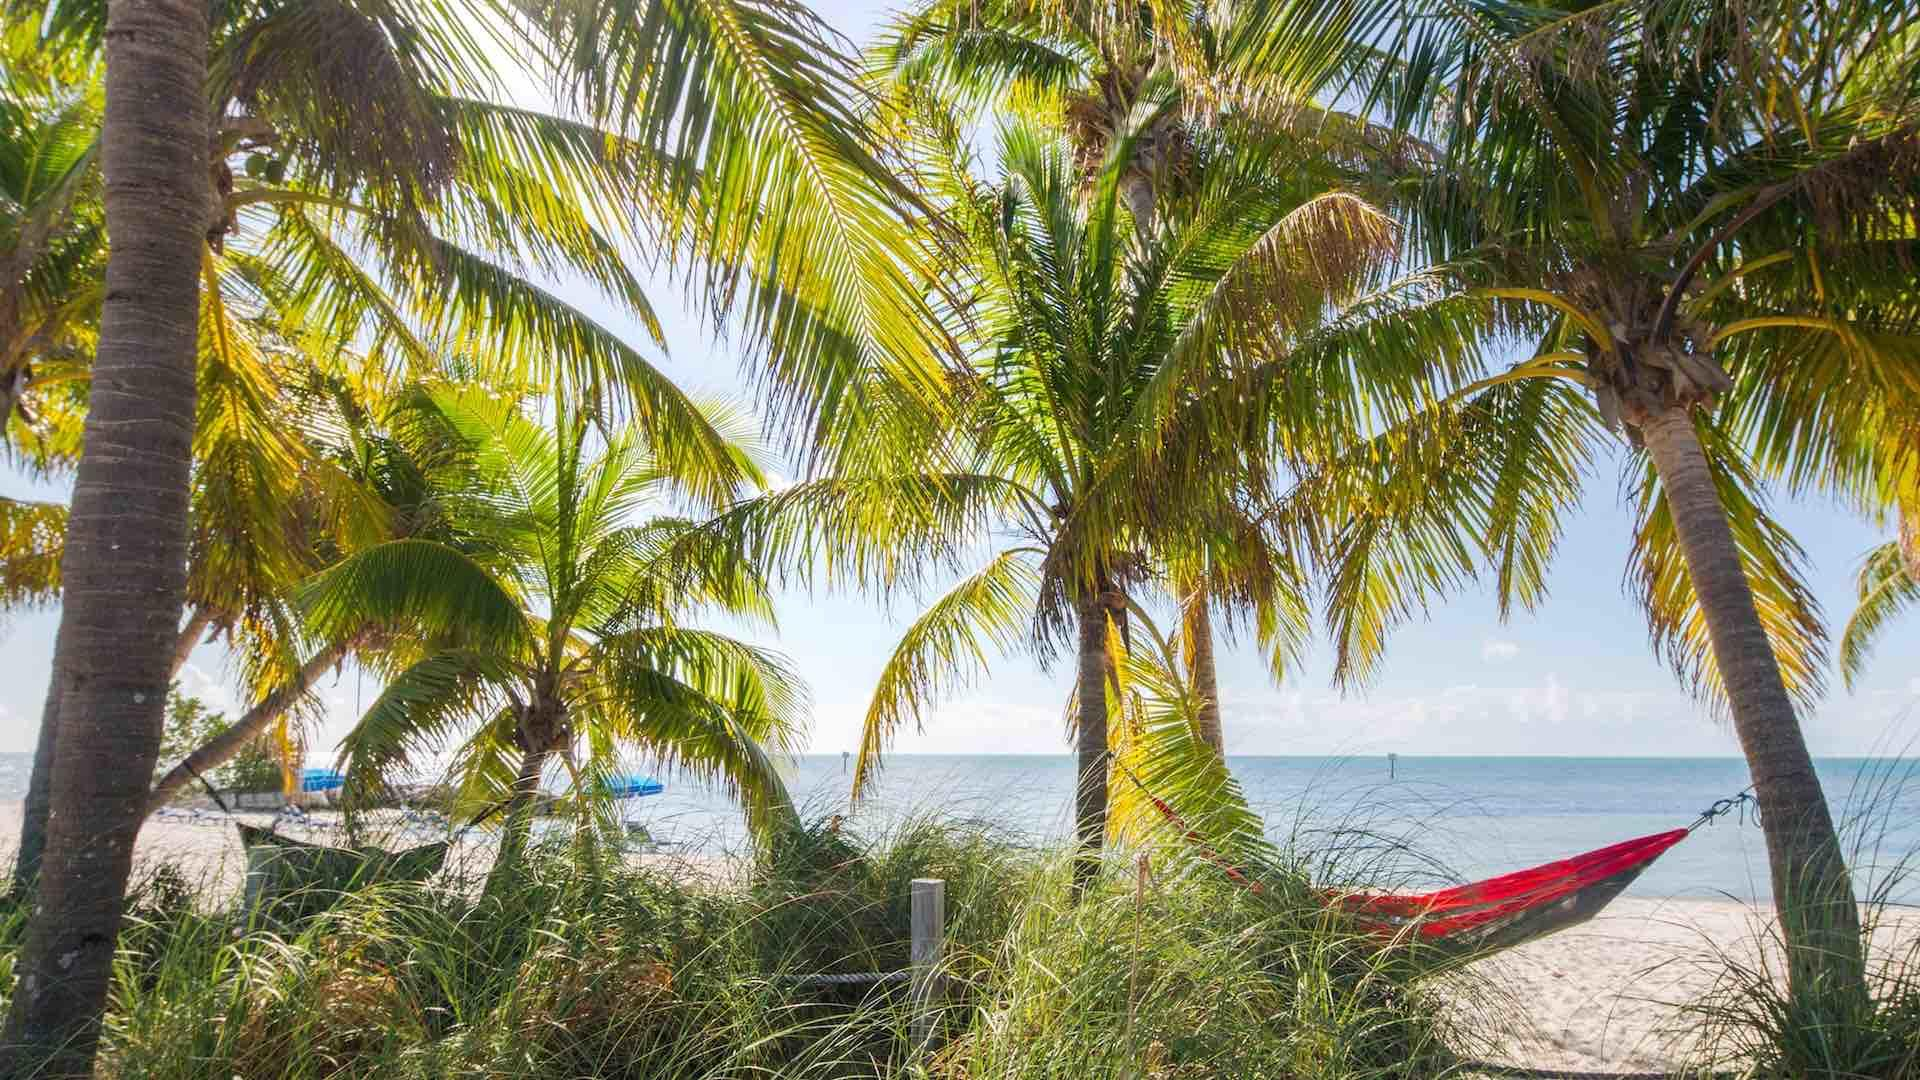 A quick walk to Smathers Beach for relaxing under the palms or in the sunshine...